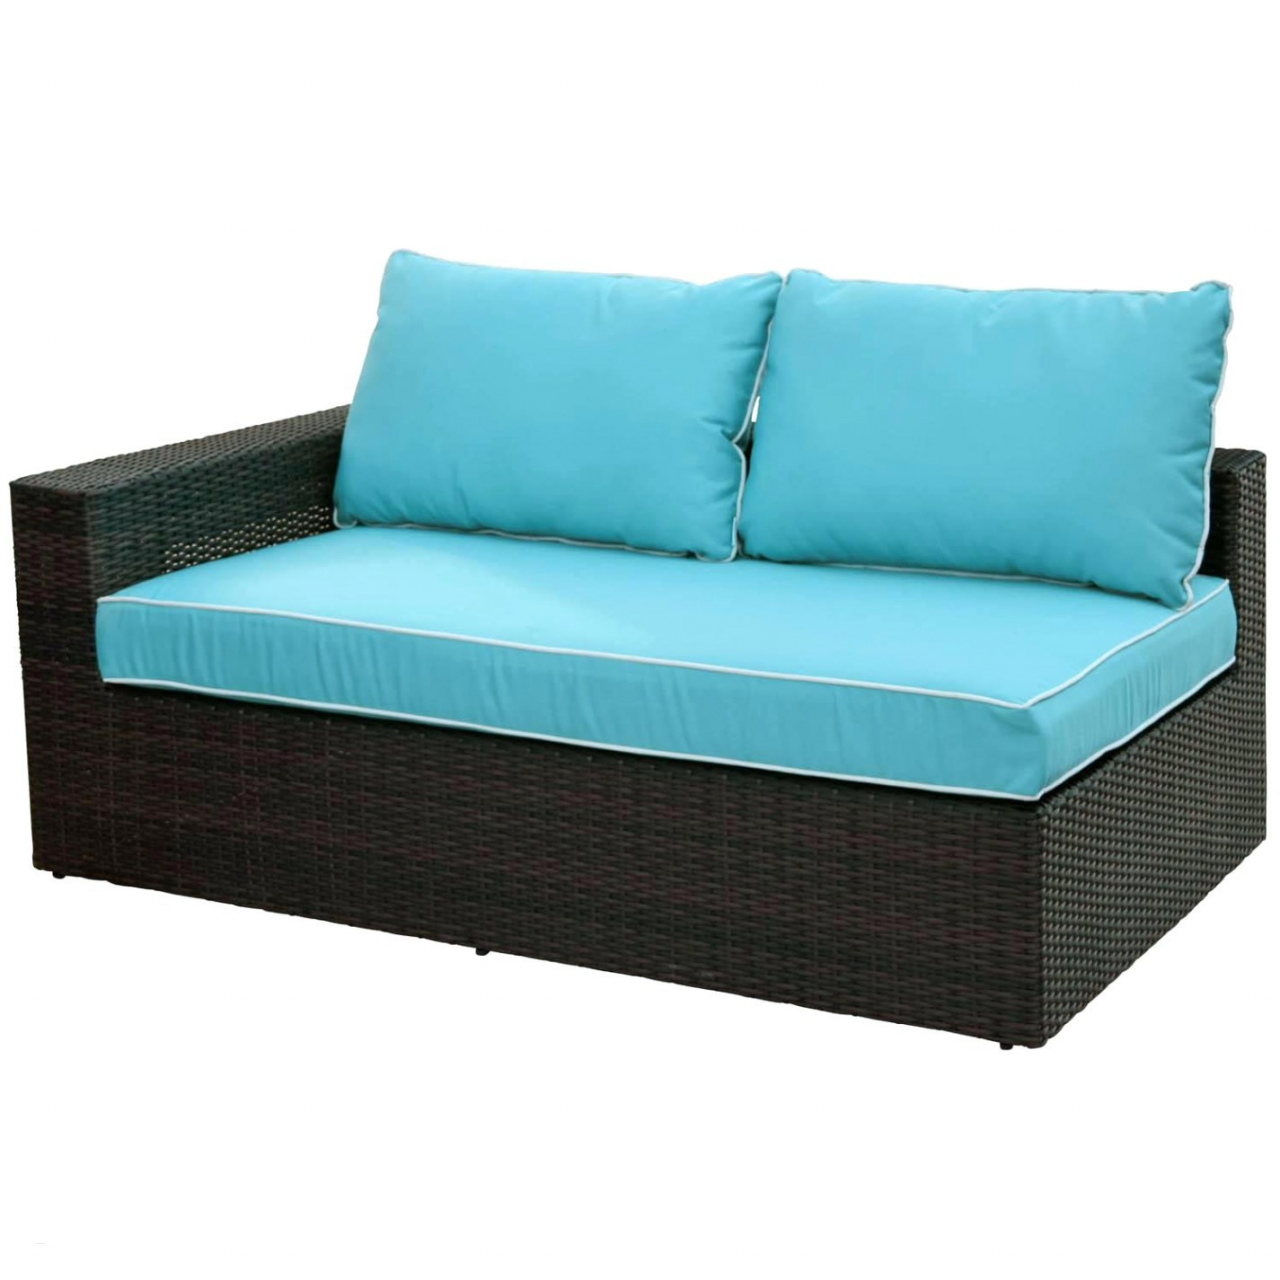 patio daybed daybed that looks like a sofa good outdoor daybed cushion luxury durch patio daybed